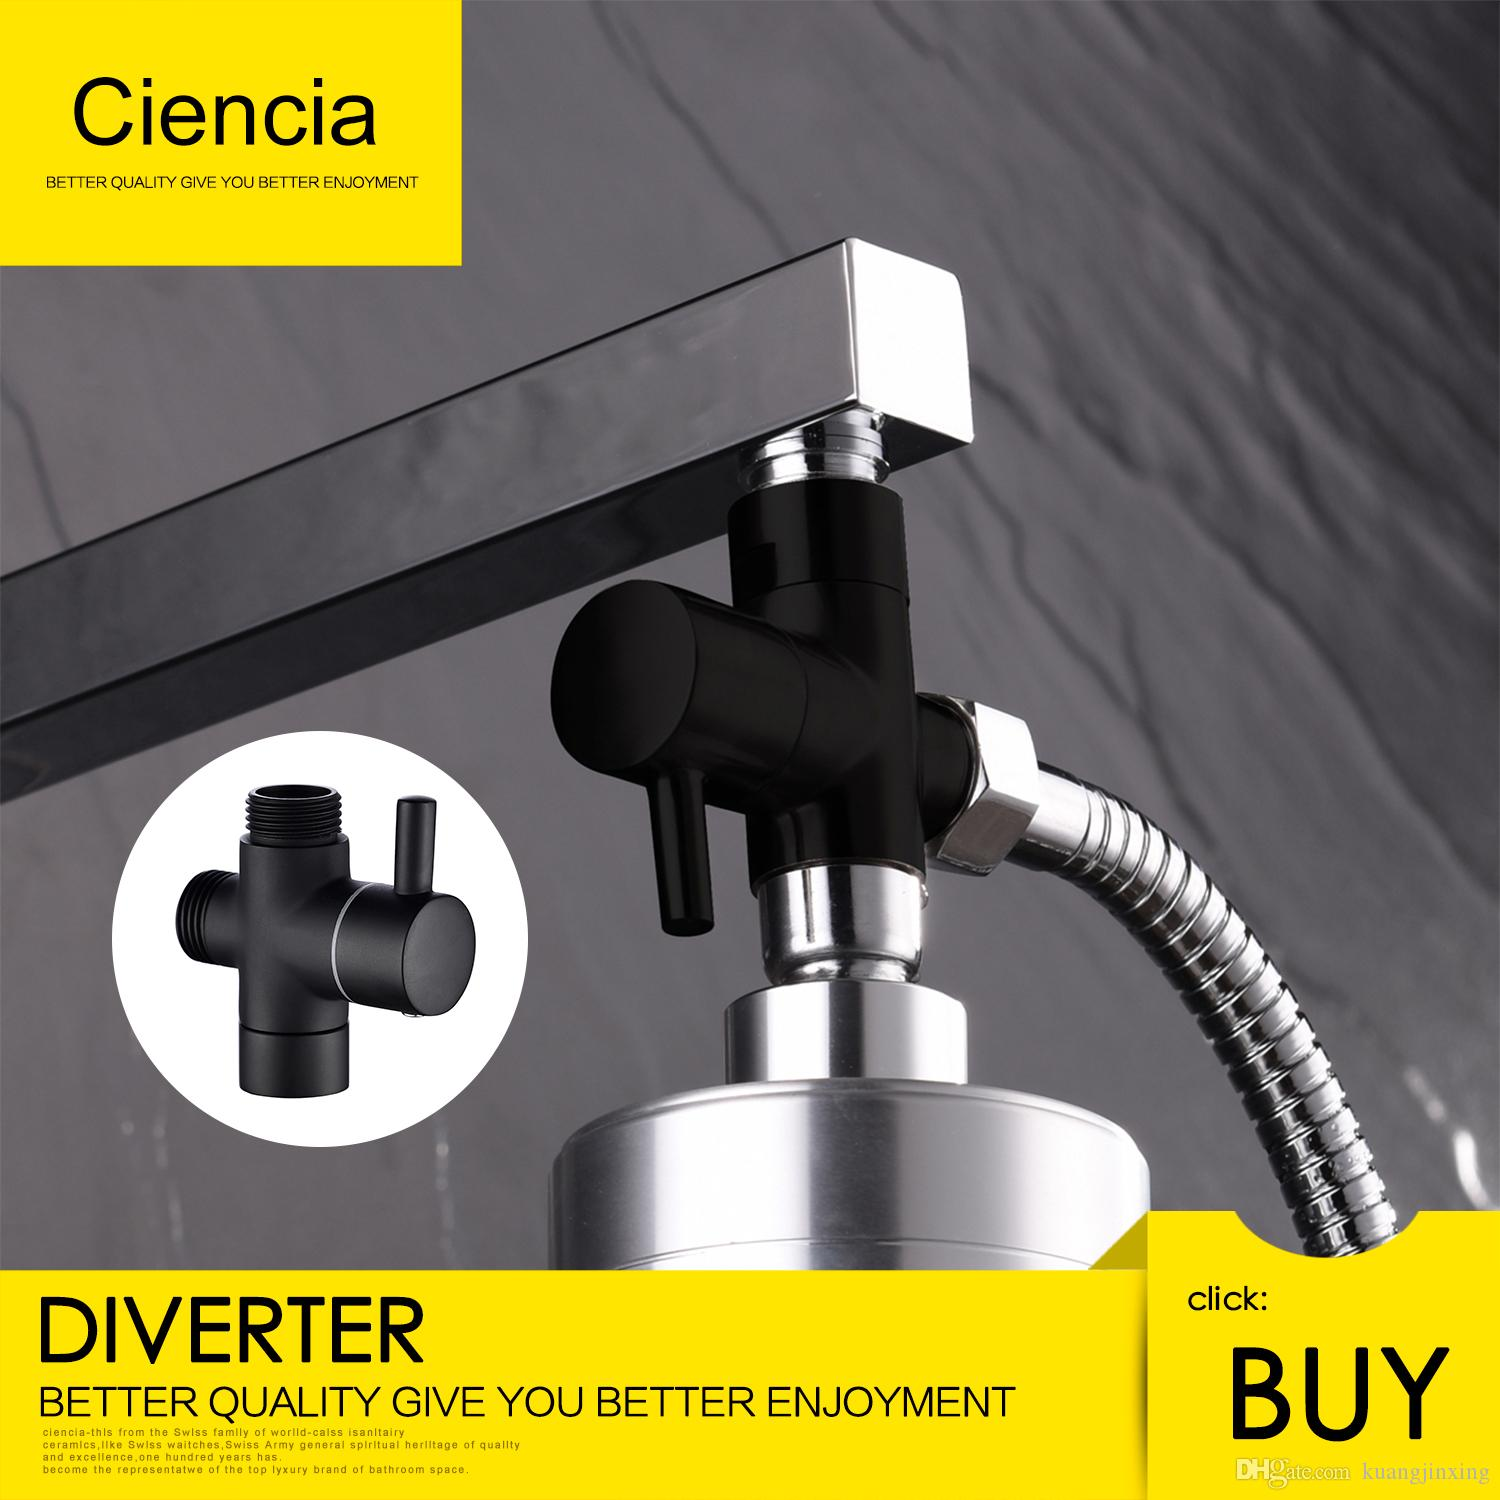 Ciencia Brass Black 3 Way Diverter Valve For Handheld Shower Head Or Switch Adapter Bath Tap Outlet T Online With